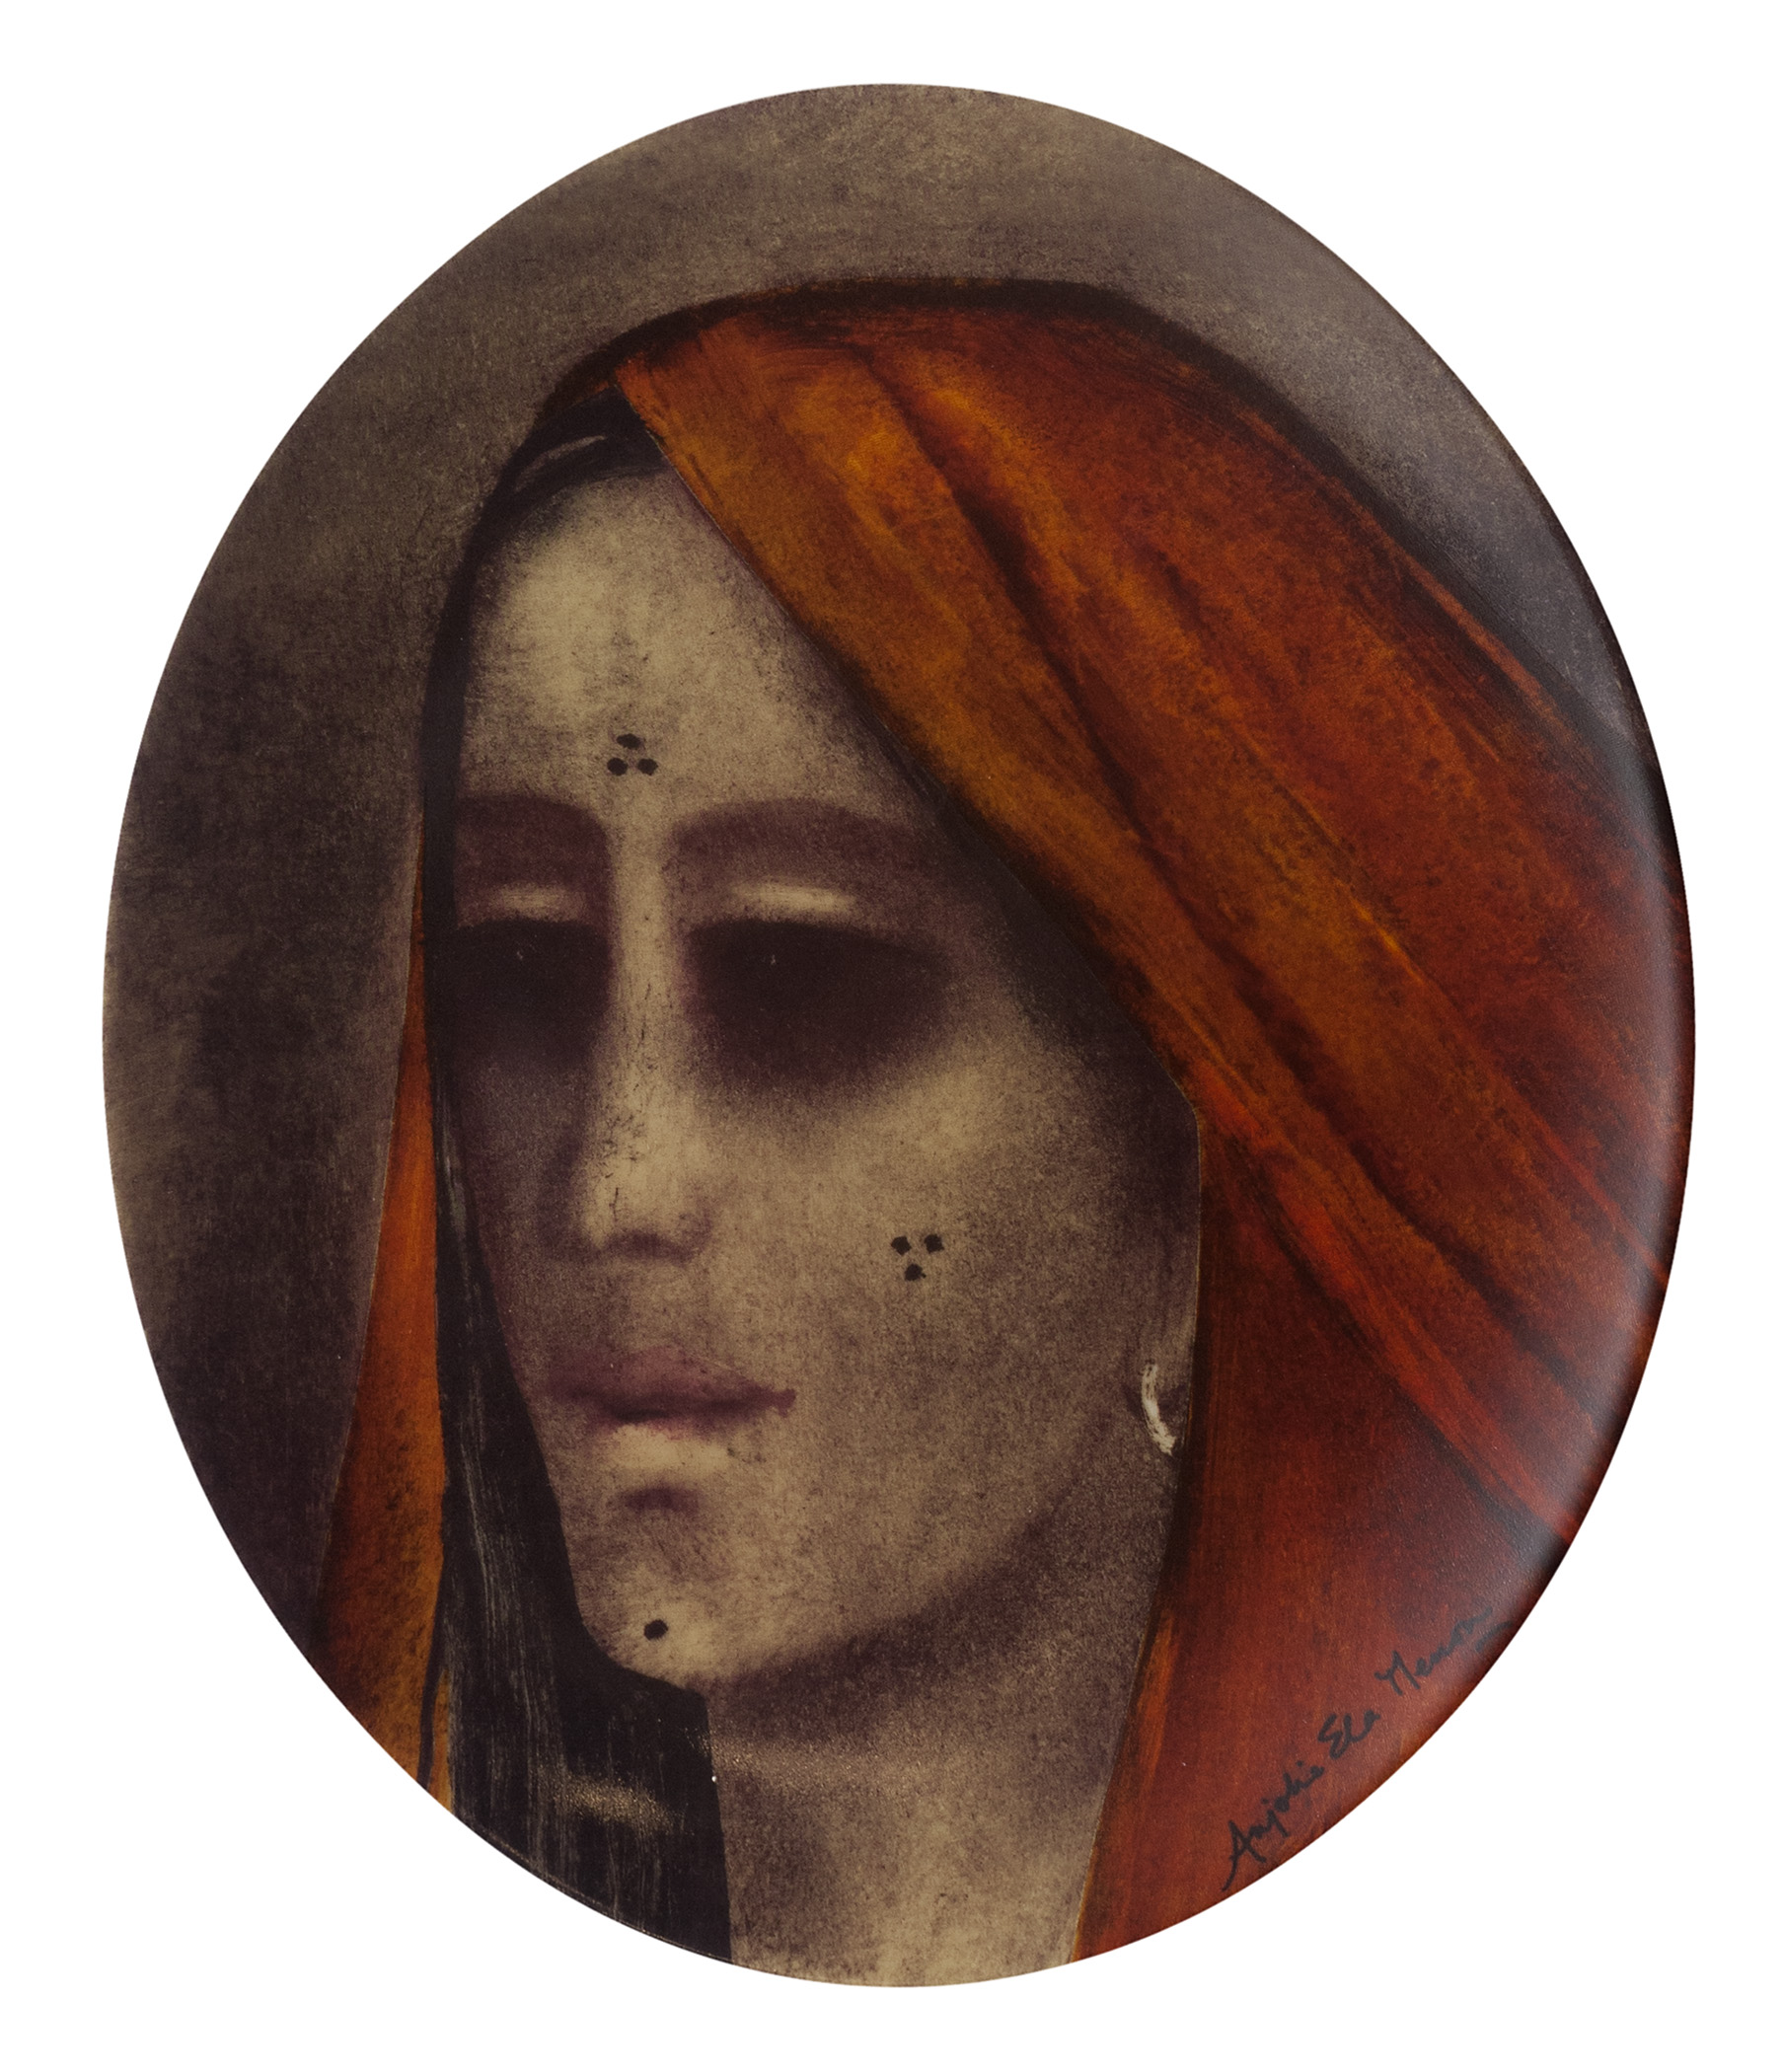 Anjolie Ela Menon, Ceramic Platter, Limited Edition of 50